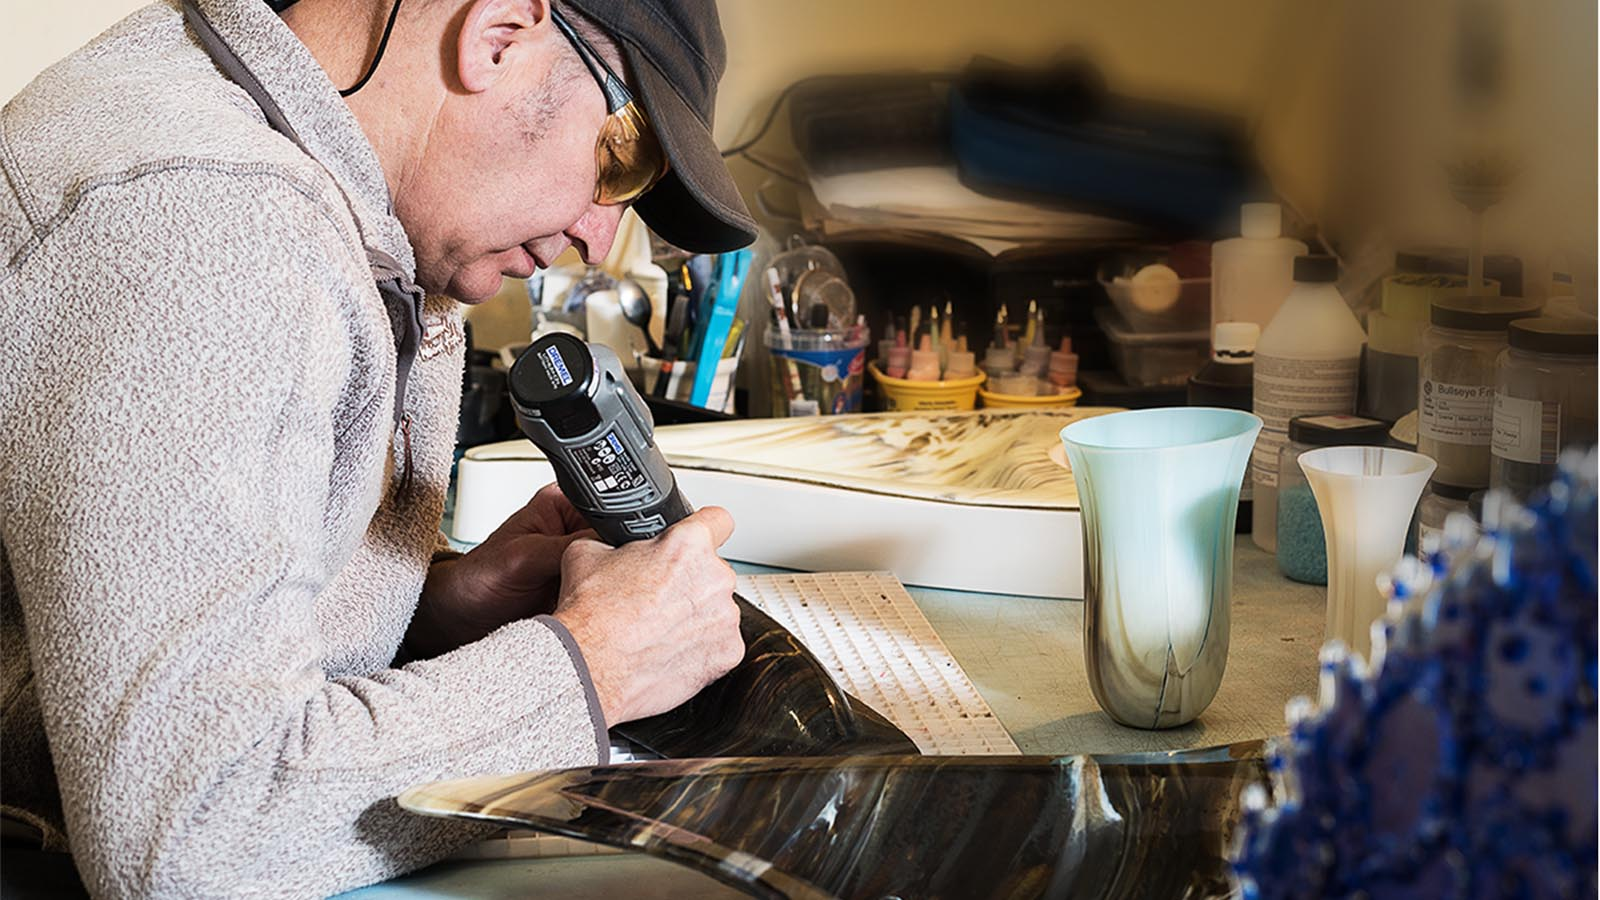 Keith Sheppard glassware artisan, pictured at work in his Portadown studio - photo shared by Bout Yeh photographers Belfast